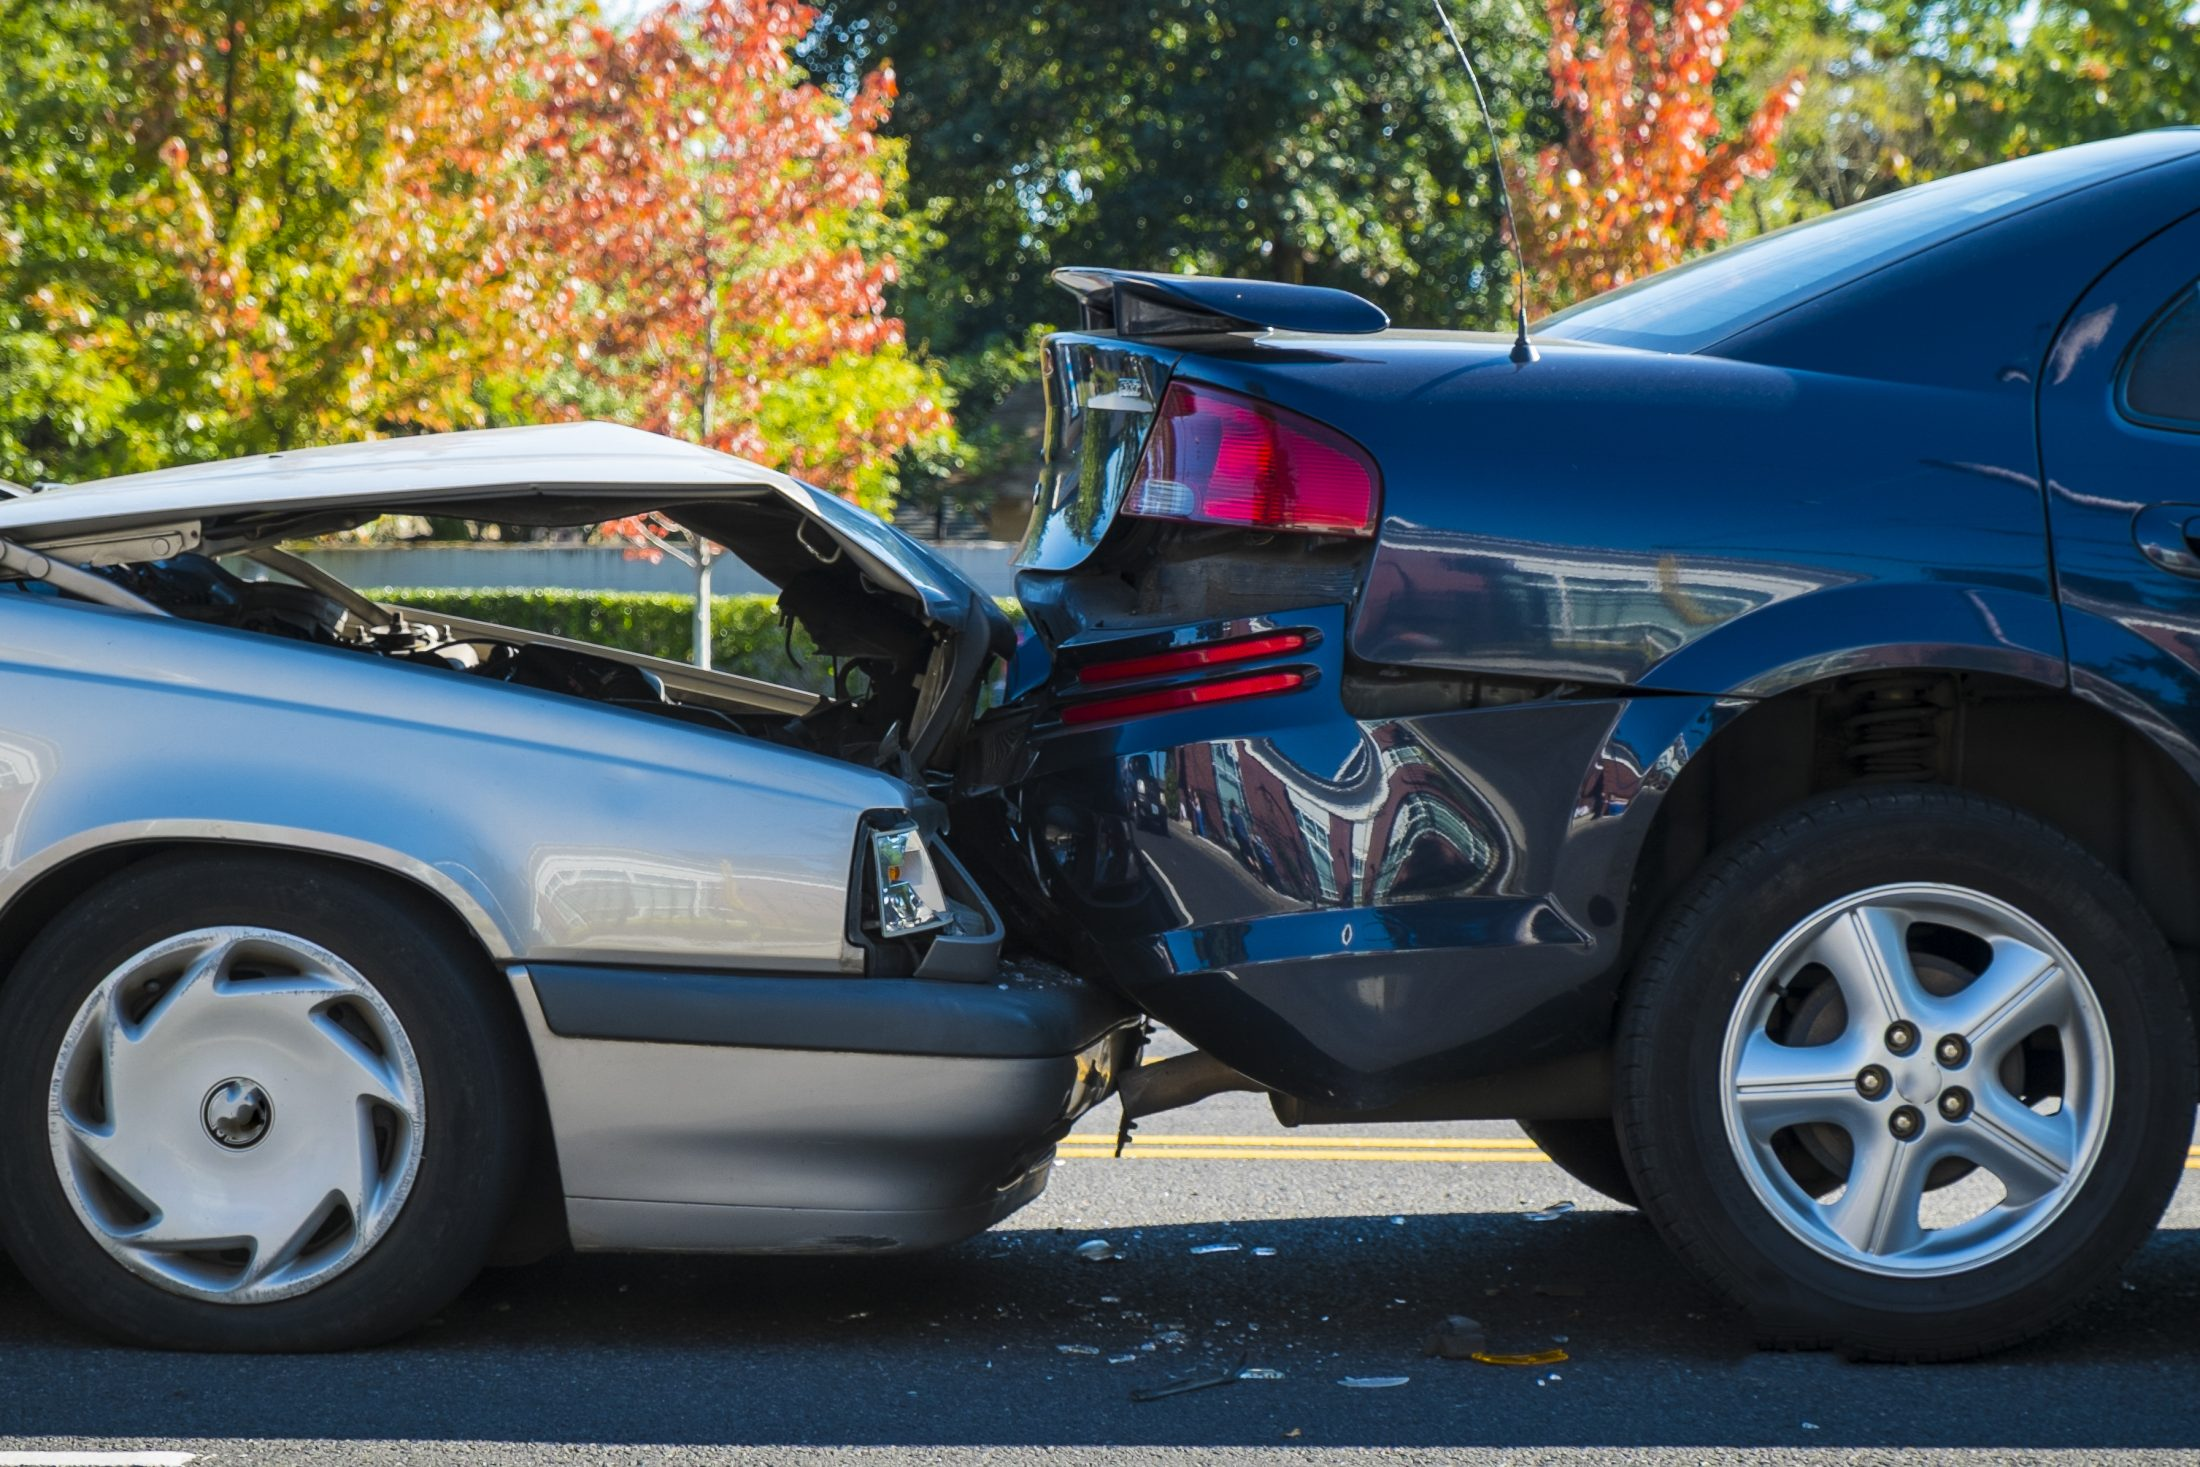 Two cars after a rear-end accident on the road in Fayetteville.